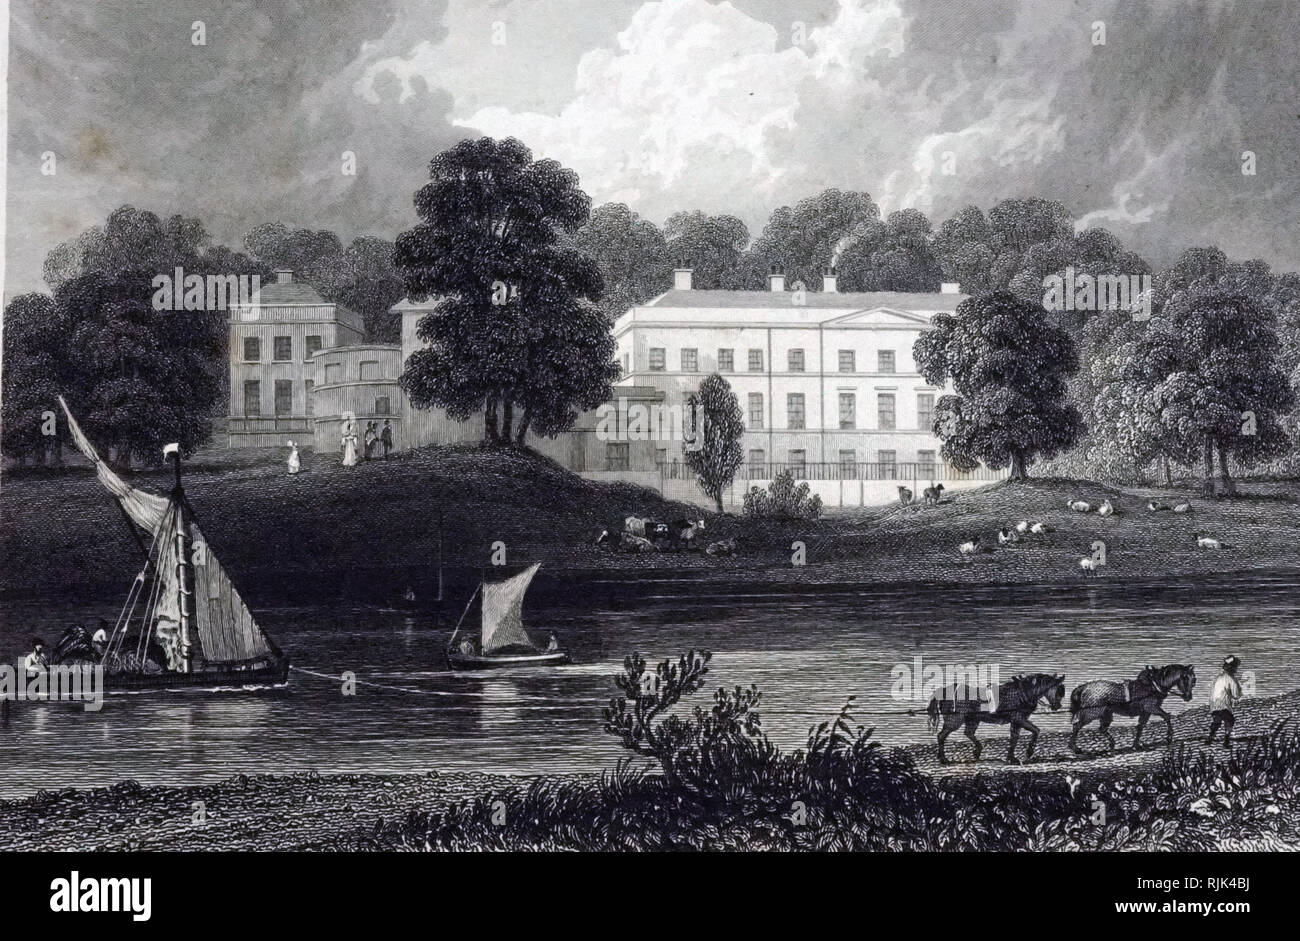 An engraving of William Tombleson's 'Nuneham Courteney, Oxon Lord Harcourts'. William Tombleson (1795-1846) an English topographical and architecture artist, illustrator, copper and steel engraver, writer and printmaker. Dated 19th century - Stock Image